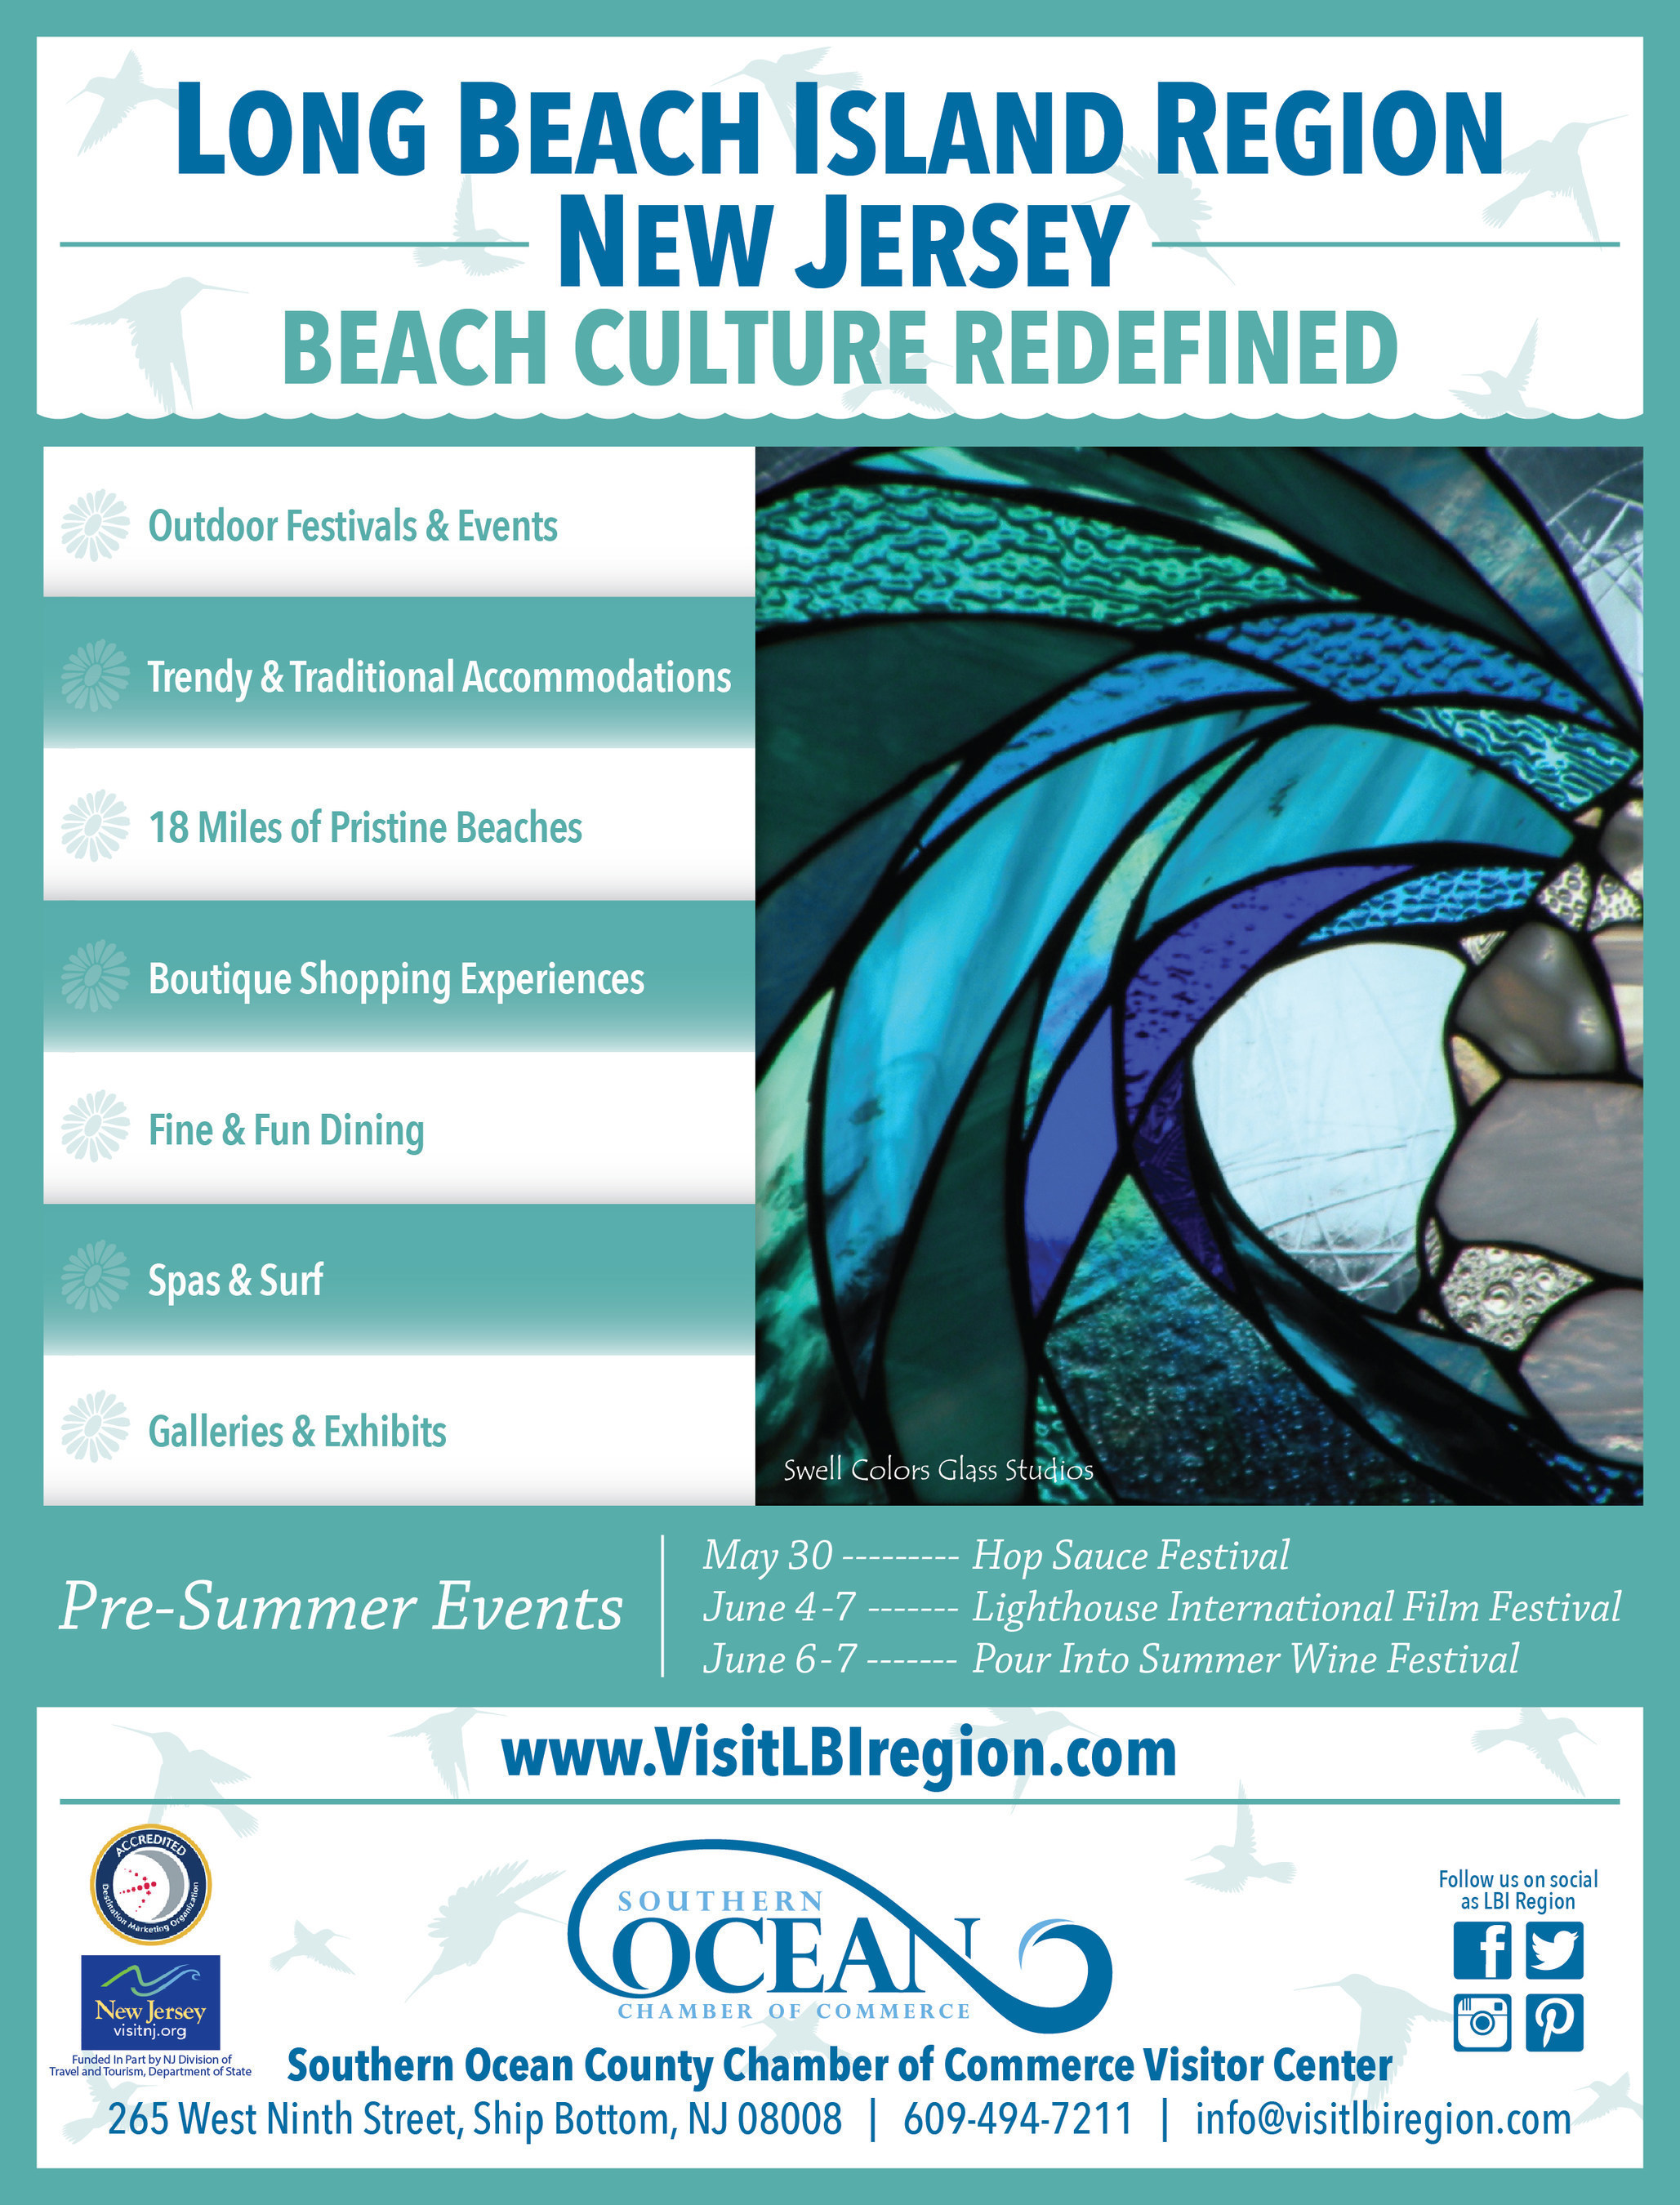 Craft Beer, New Jersey Wines & International Films Head to Summer 2015 on Long Beach Island